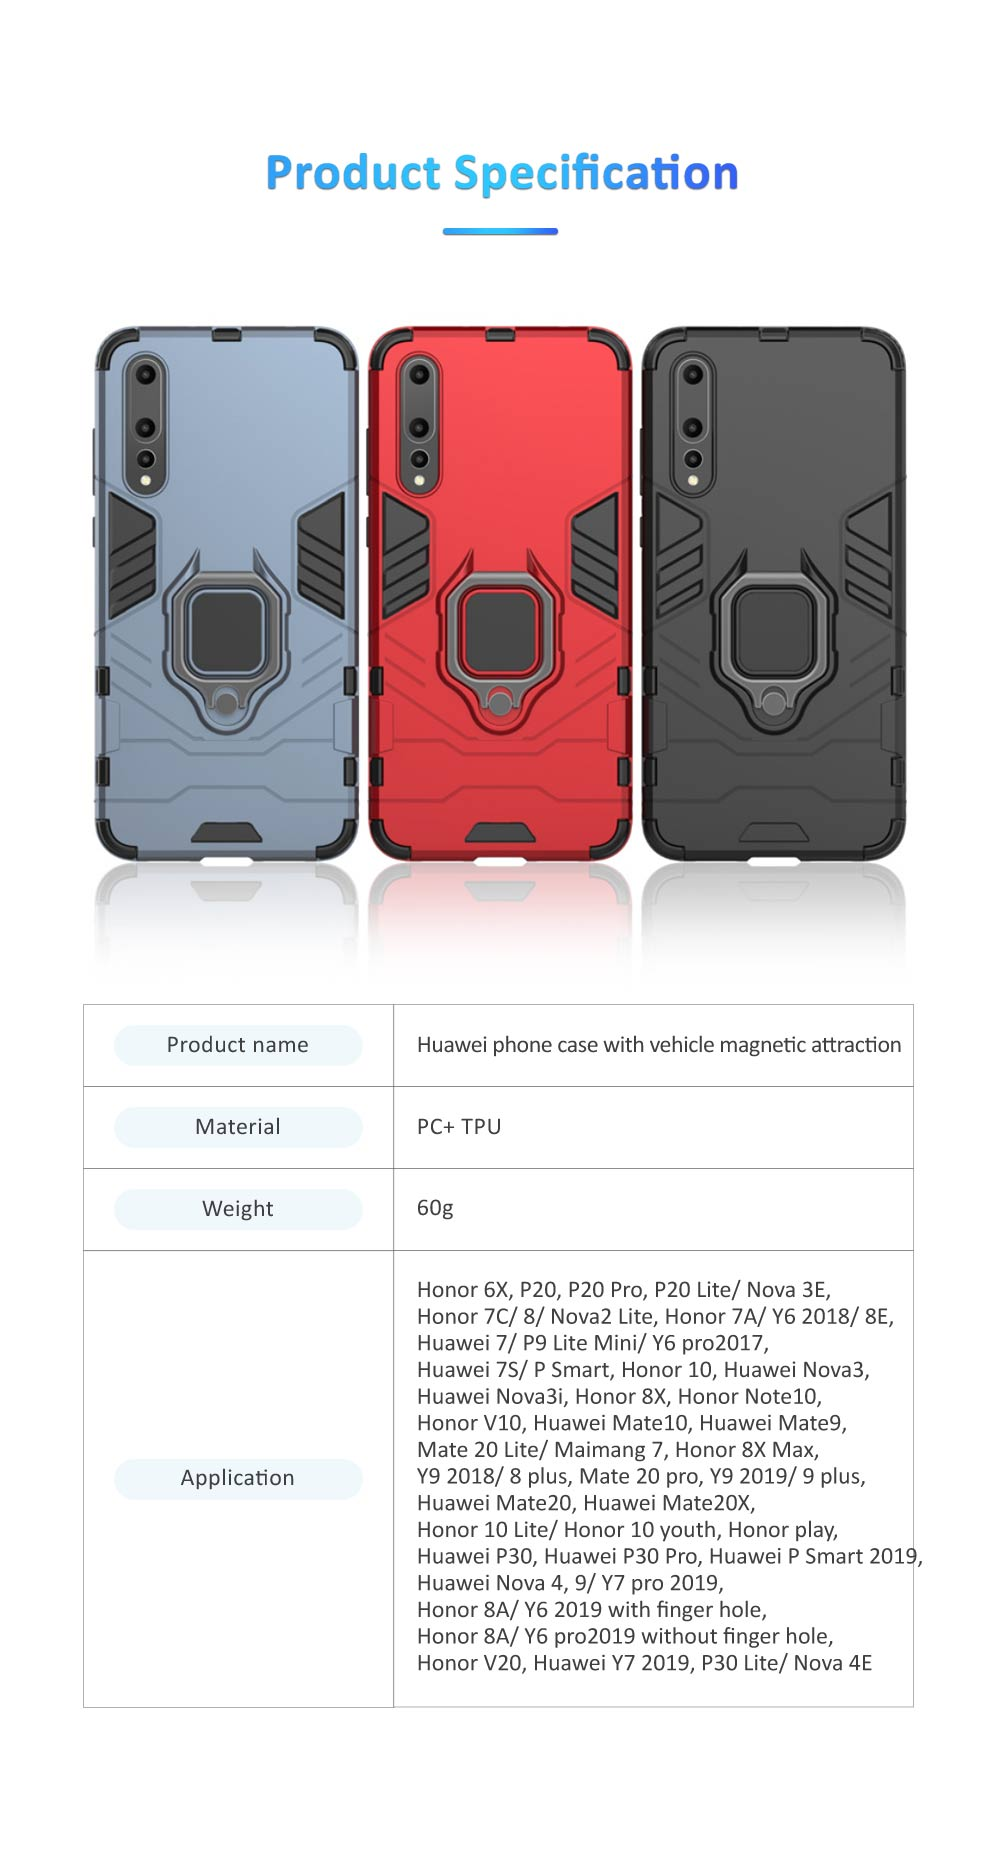 Soft PC TPU Huawei Phone Case with Vehicle Magnetic Attraction, Minimalist Luxury Breaking-proof Phone Cover with Ring Holder 6